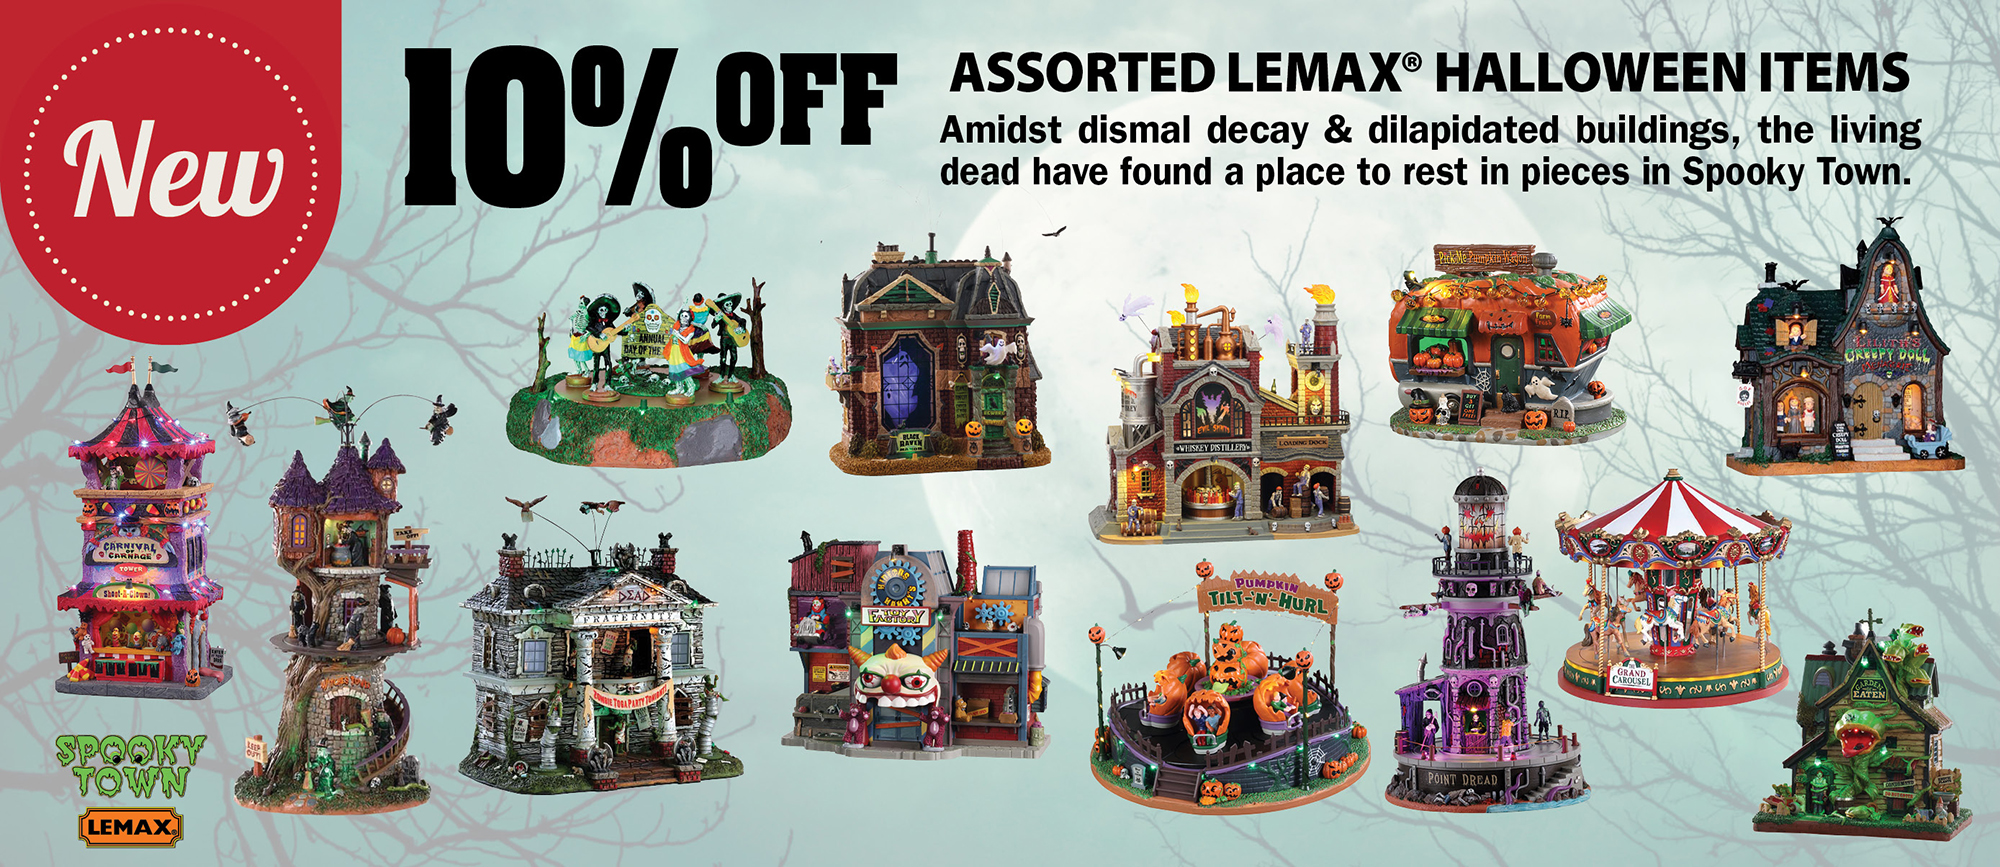 10% off   Assorted Lemax® Halloween Items Amidst dismal decay & dilapidated buildings, the living dead have found a place to rest in pieces in Spooky Town.